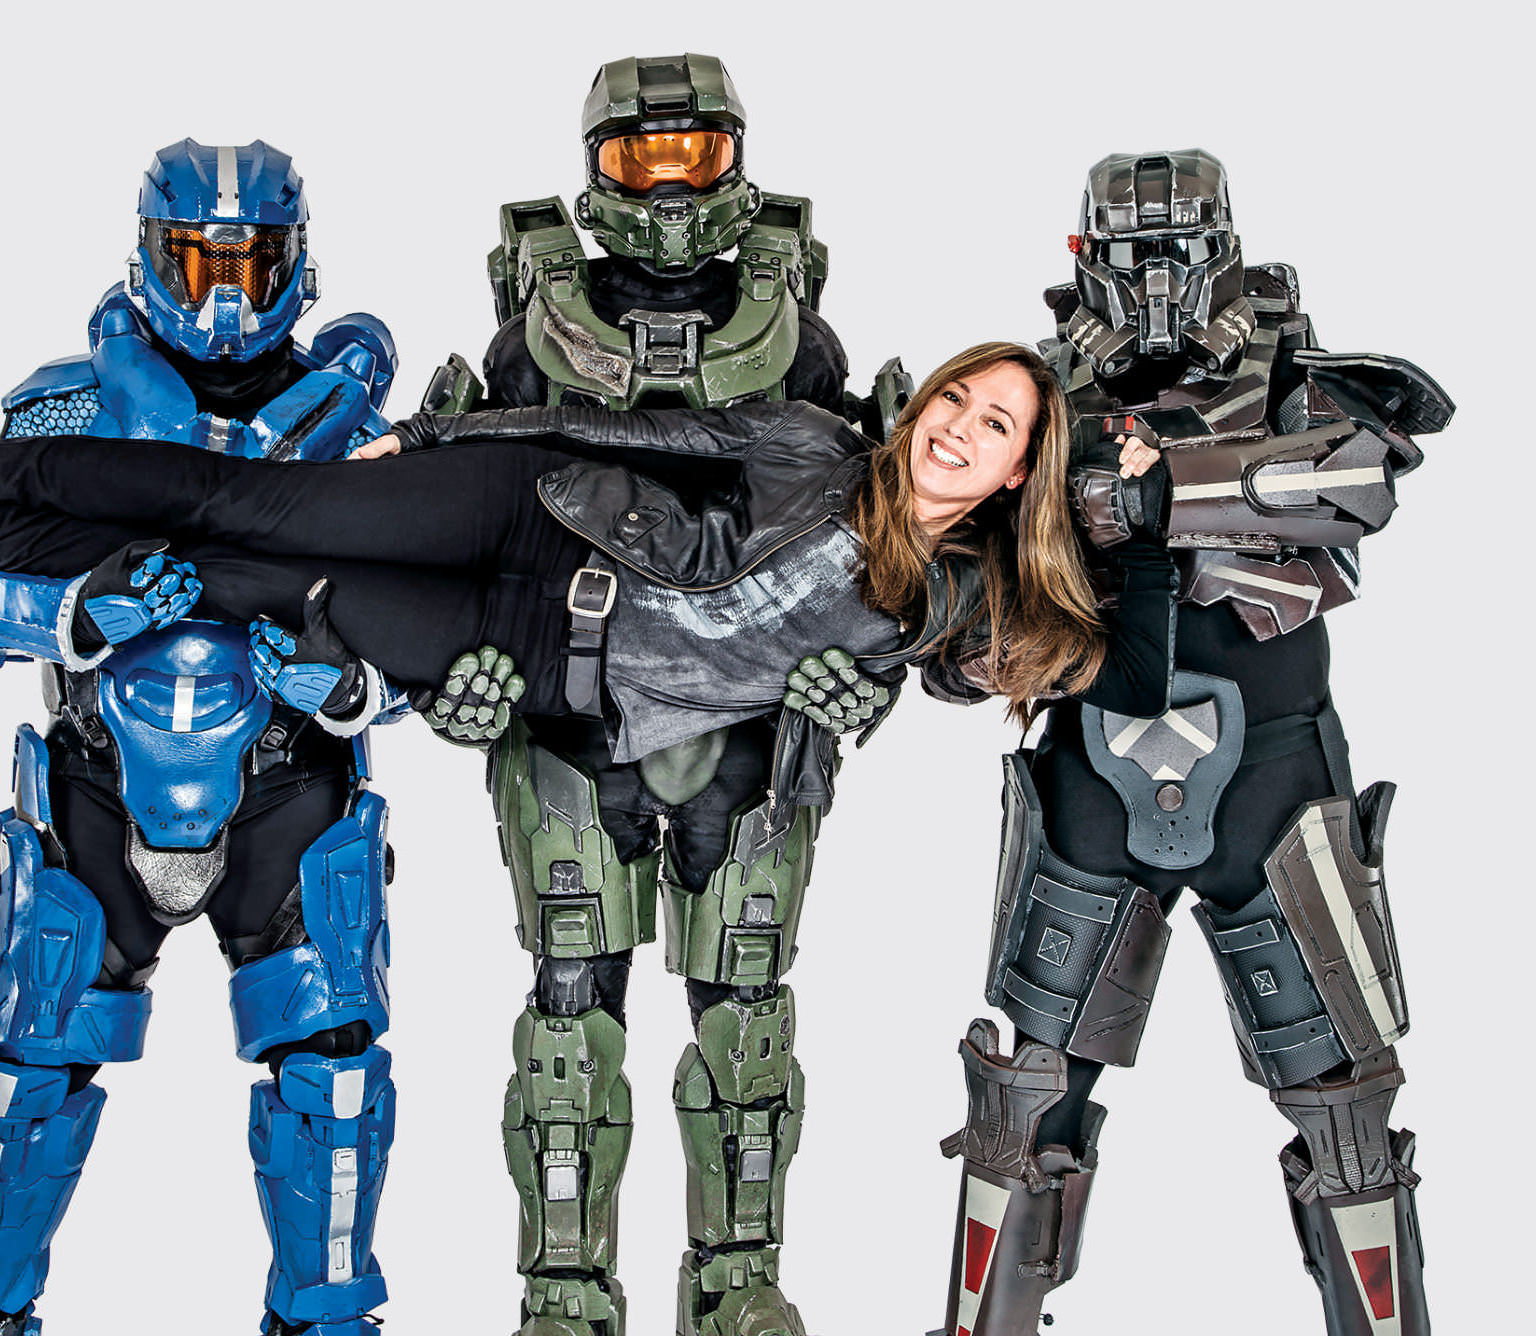 Can Halo5 Save The Xbox?